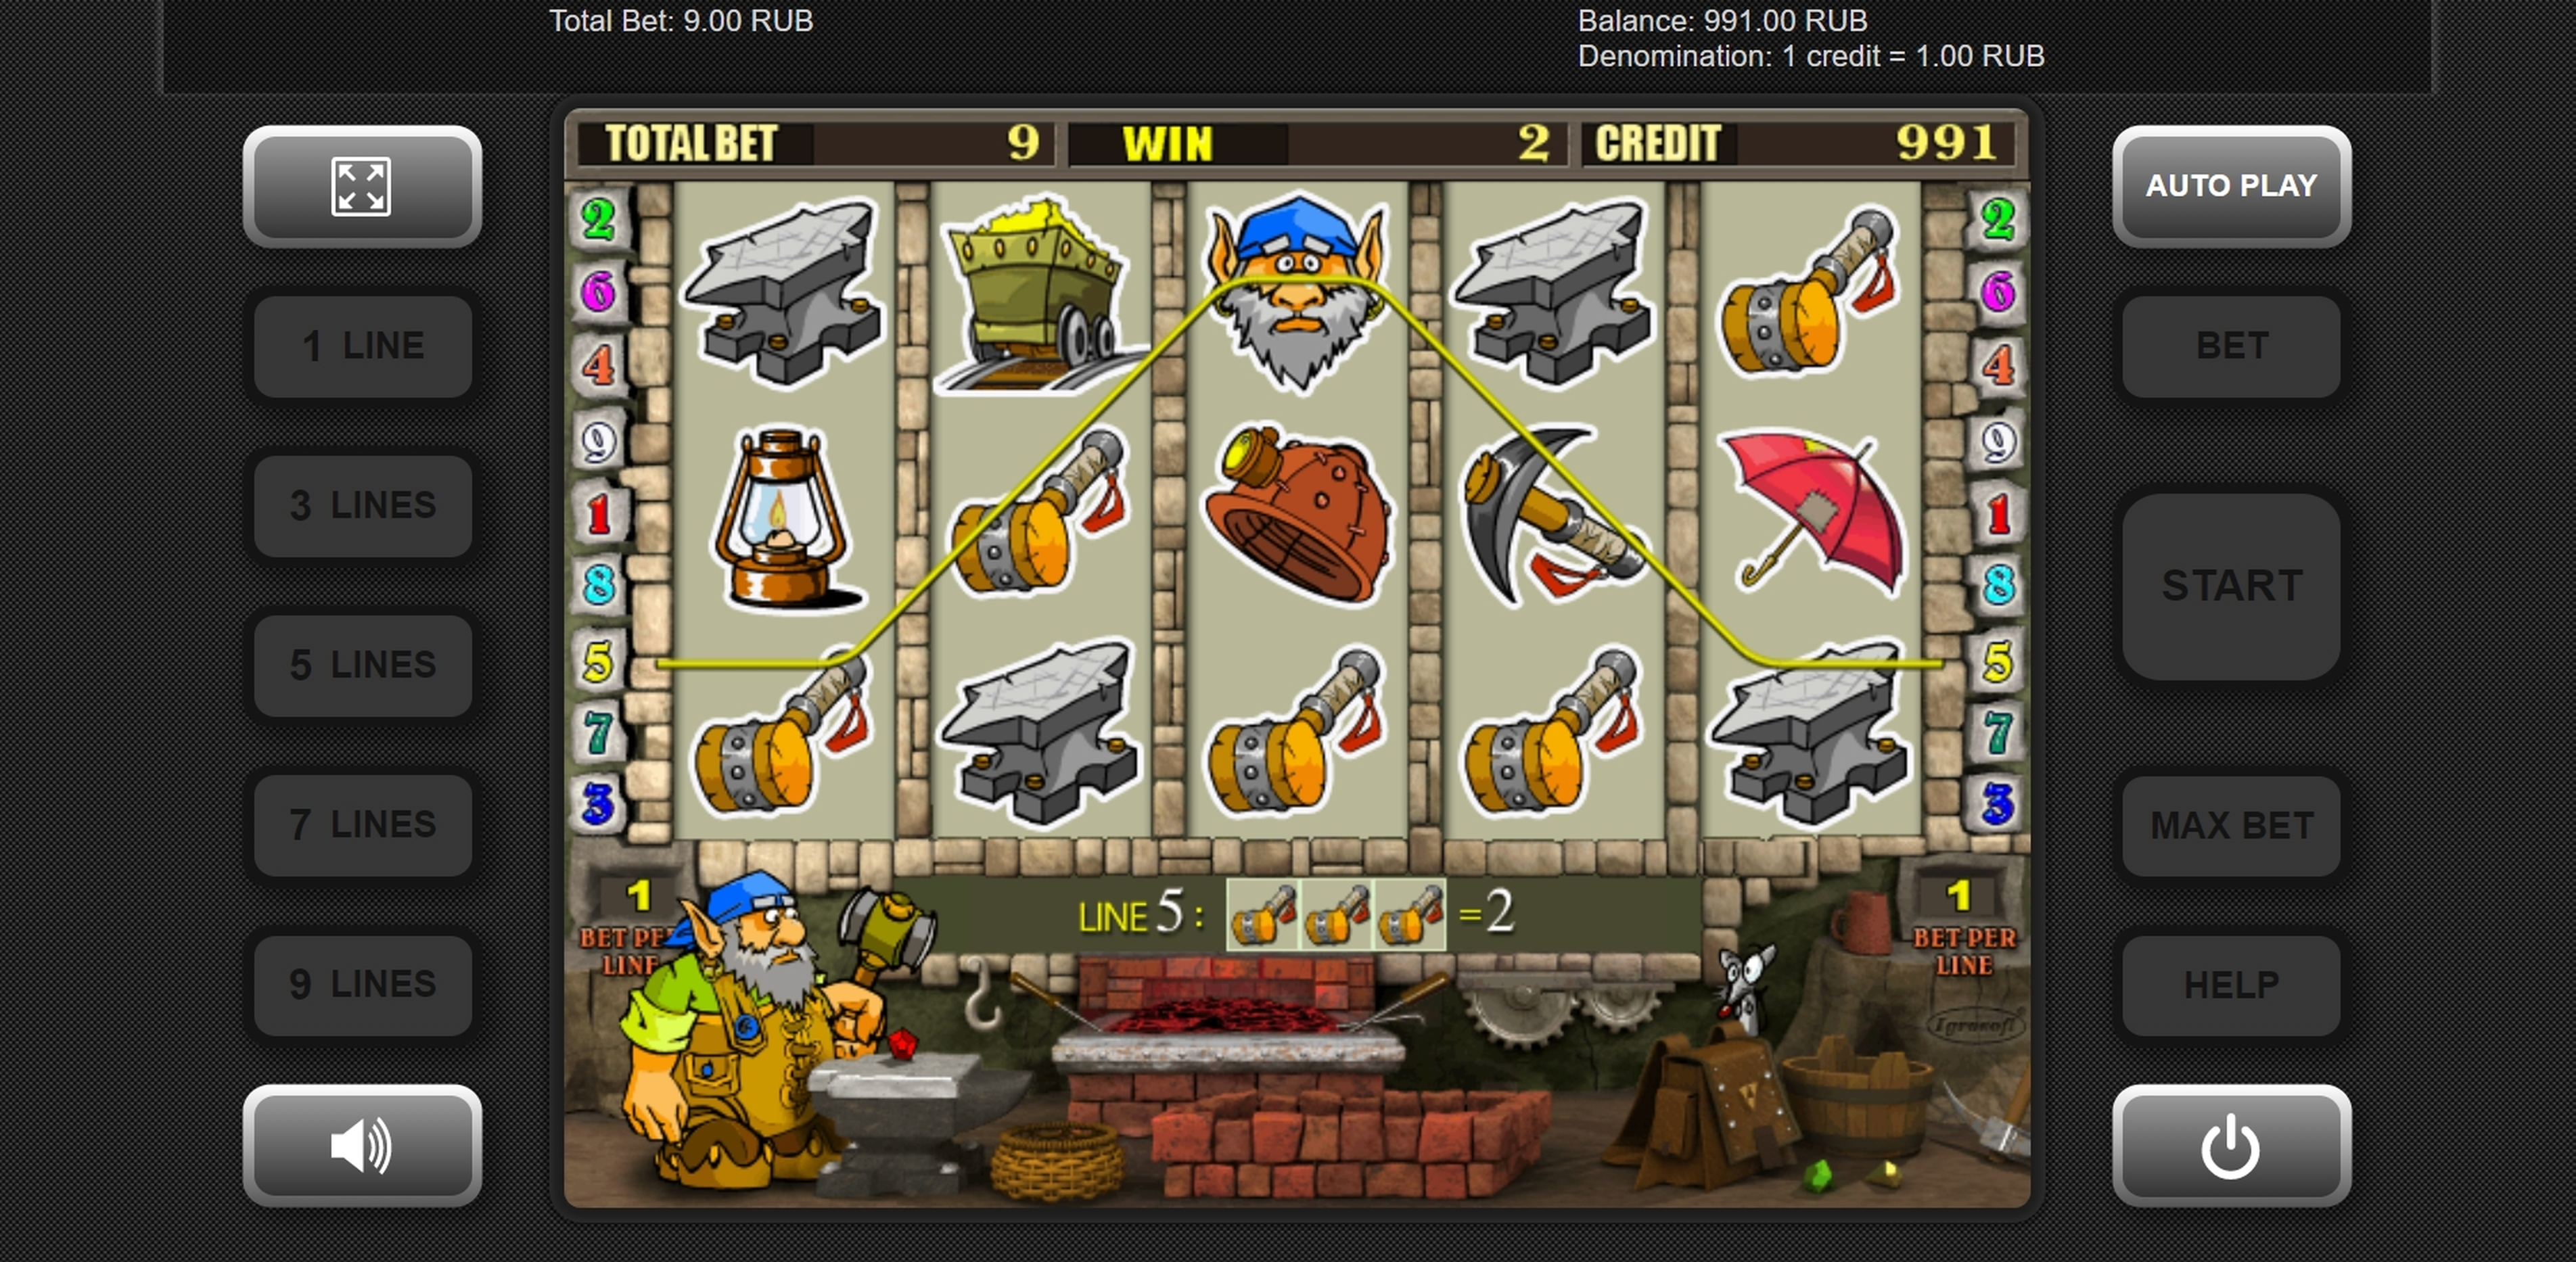 Win Money in Gnome Free Slot Game by Igrosoft